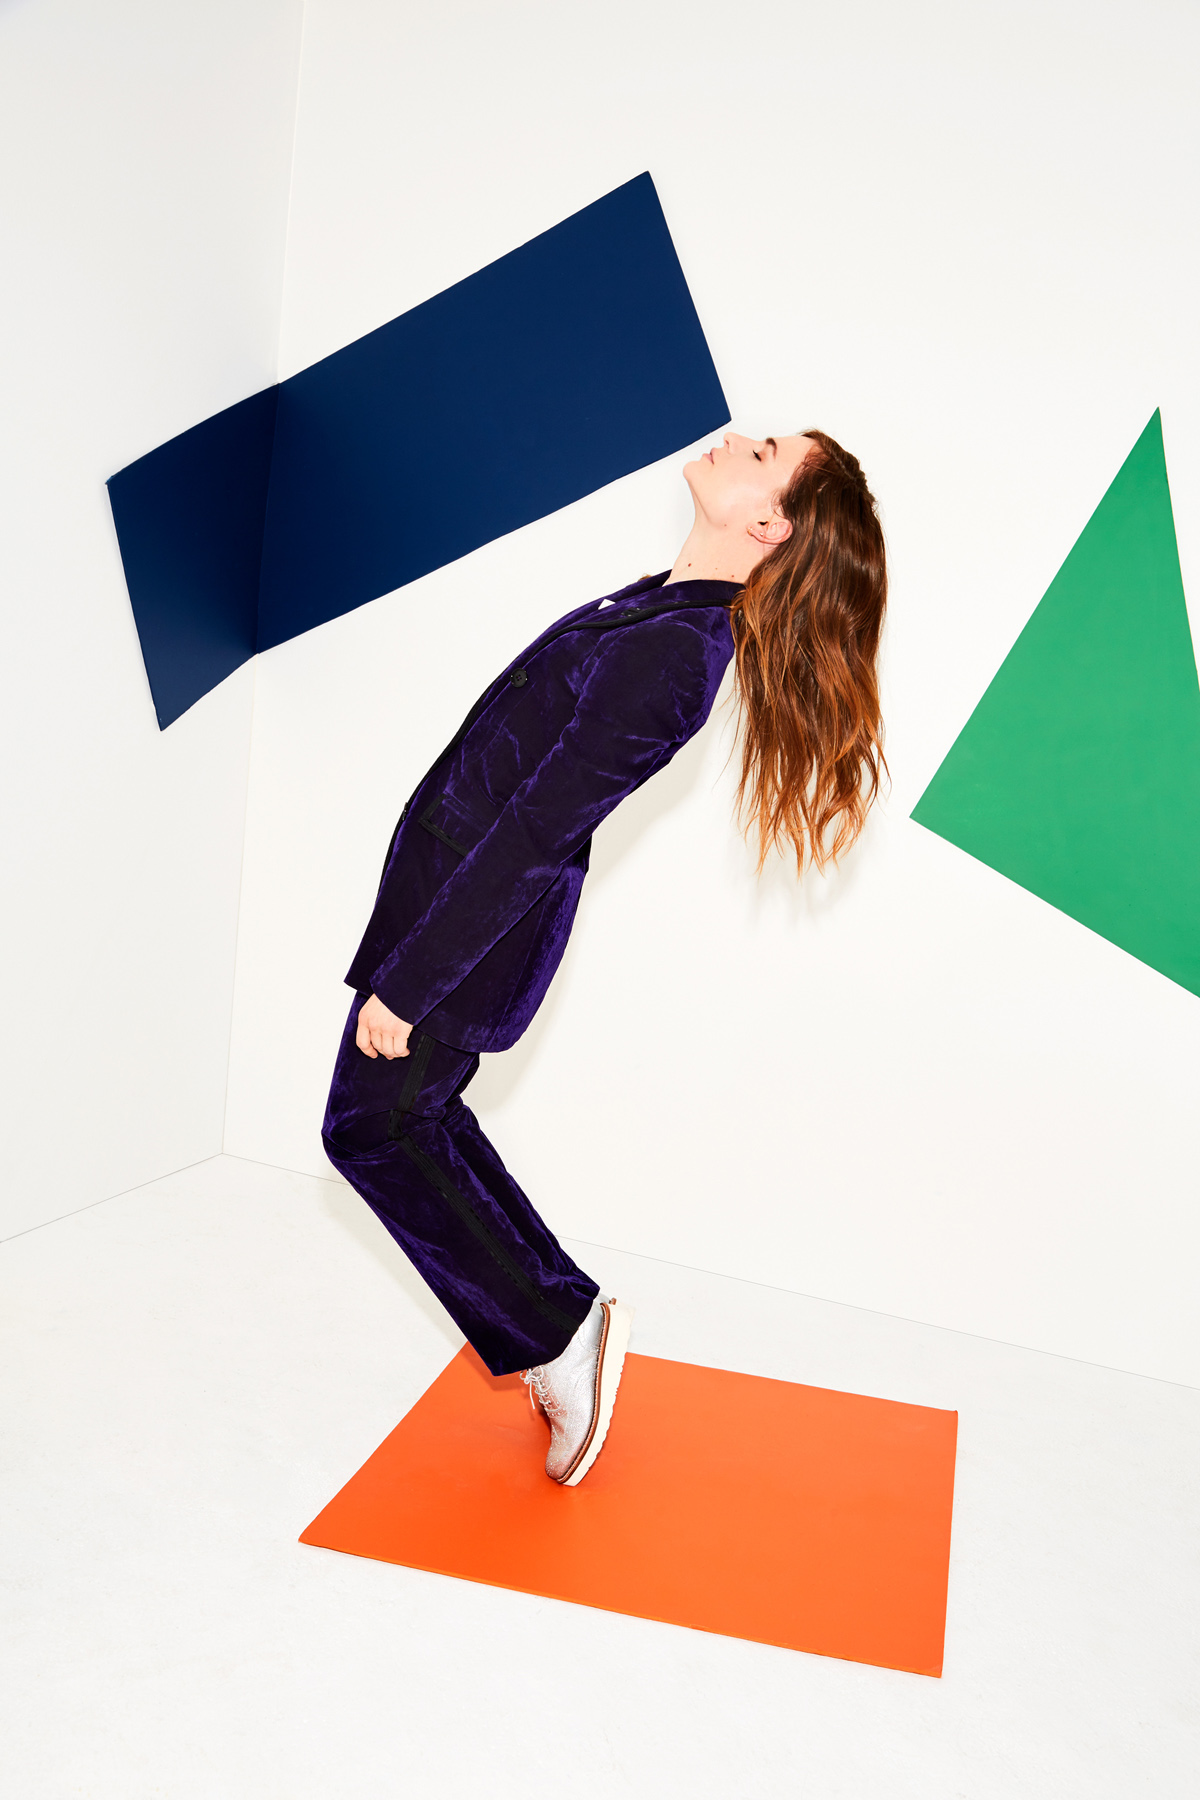 KATE OWEN | CHRISTINE & THE QUEENS